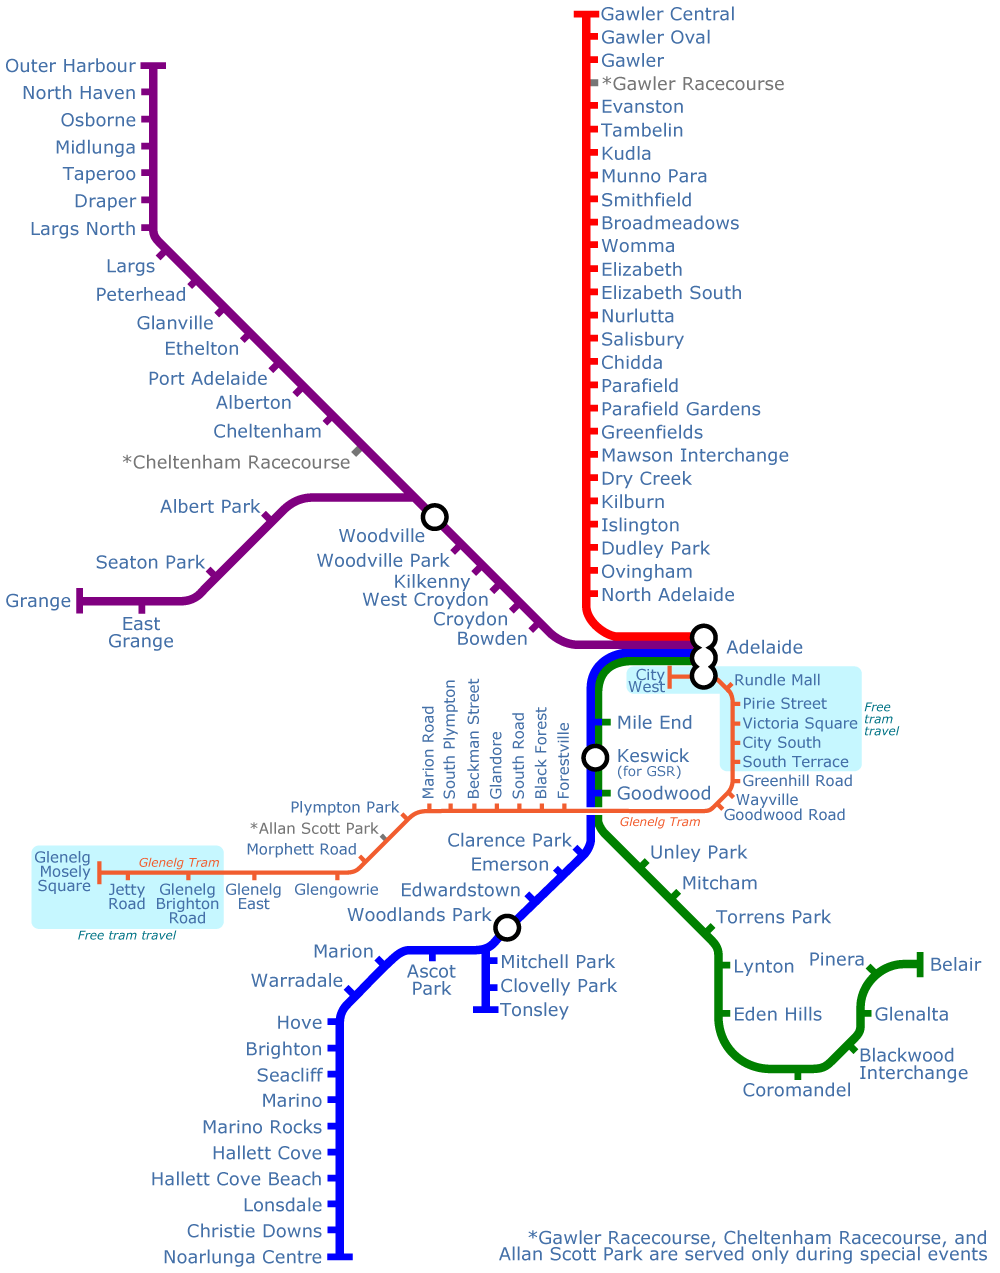 Adelaide Metro System Map (subway)